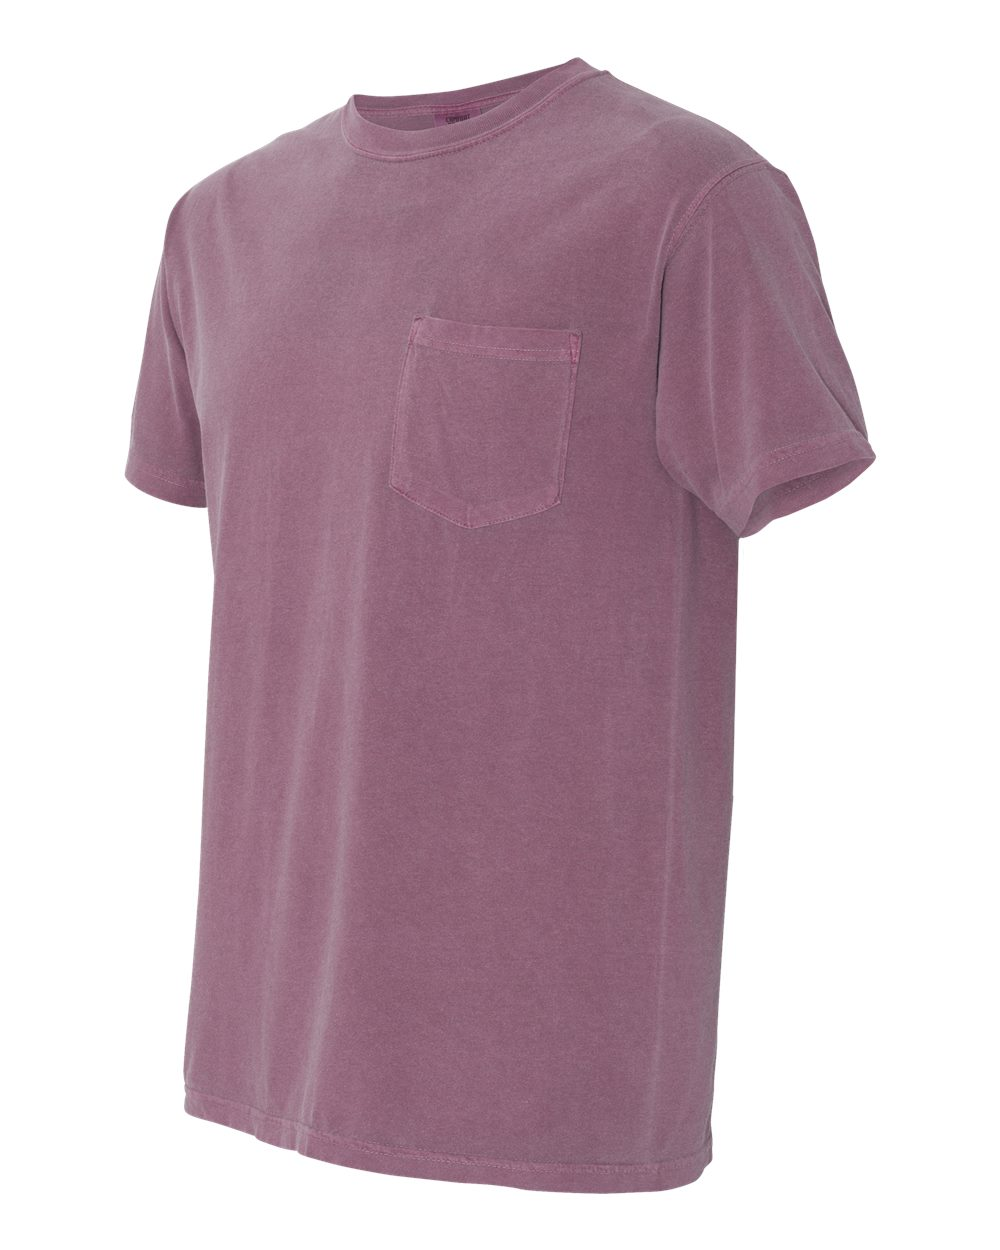 Comfort-Colors-Men-039-s-6-1-oz-Garment-Dyed-Pocket-T-Shirt-6030CC-S-3XL thumbnail 3